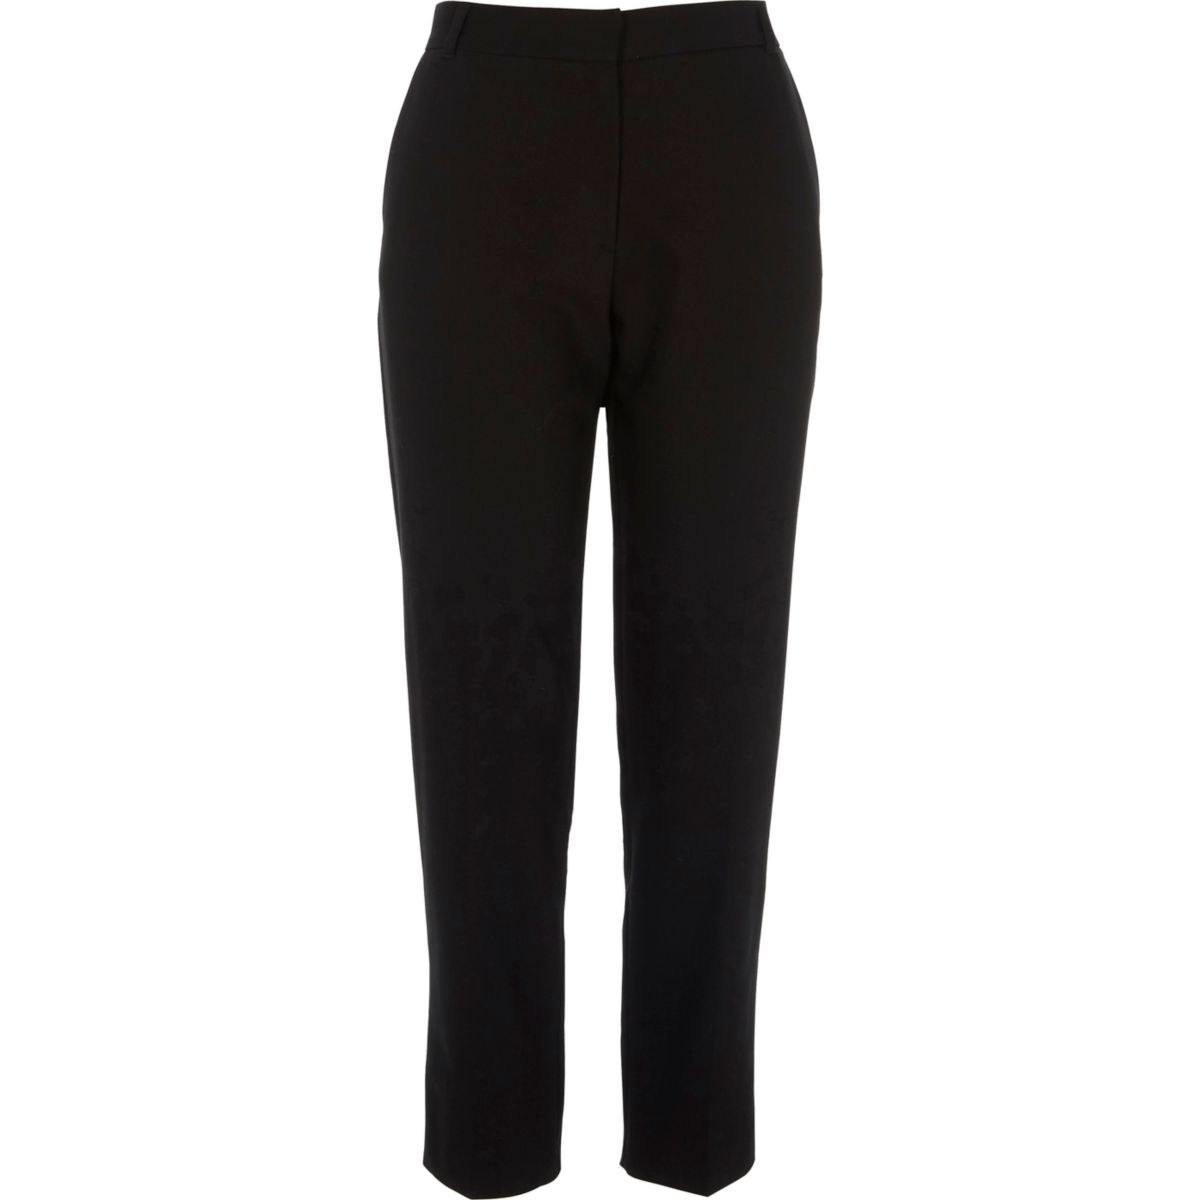 Women's staple office trousers for an elevated attire. Shop smart black trousers for an elegant office look. Next day delivery and free returns available.